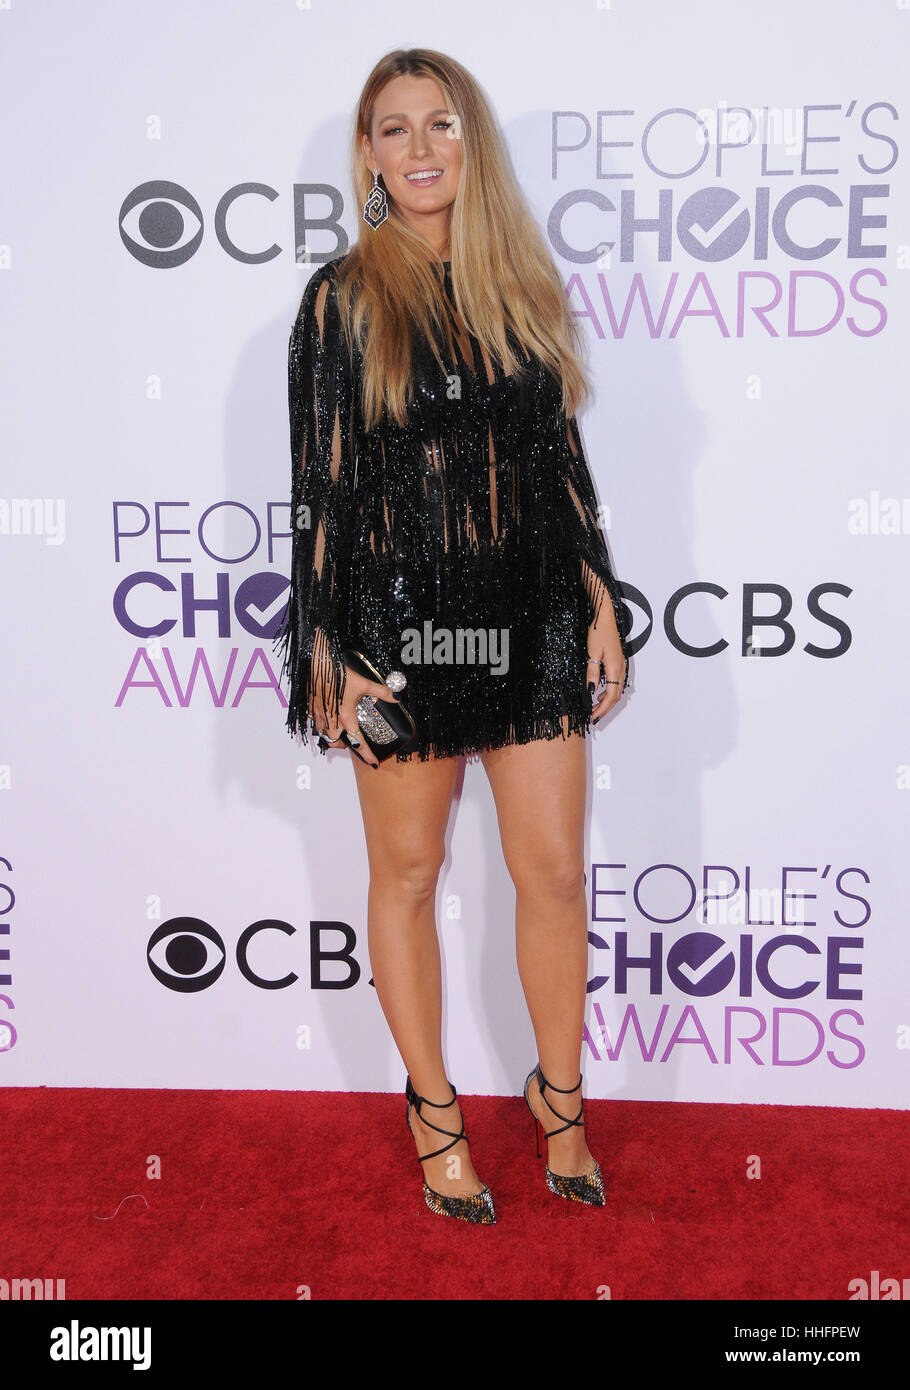 Los Angeles, CA, USA. 18 janvier, 2017. Blake Lively. 2017 People's Choice Awards 2017 qui a eu lieu au théâtre. Photo Stock